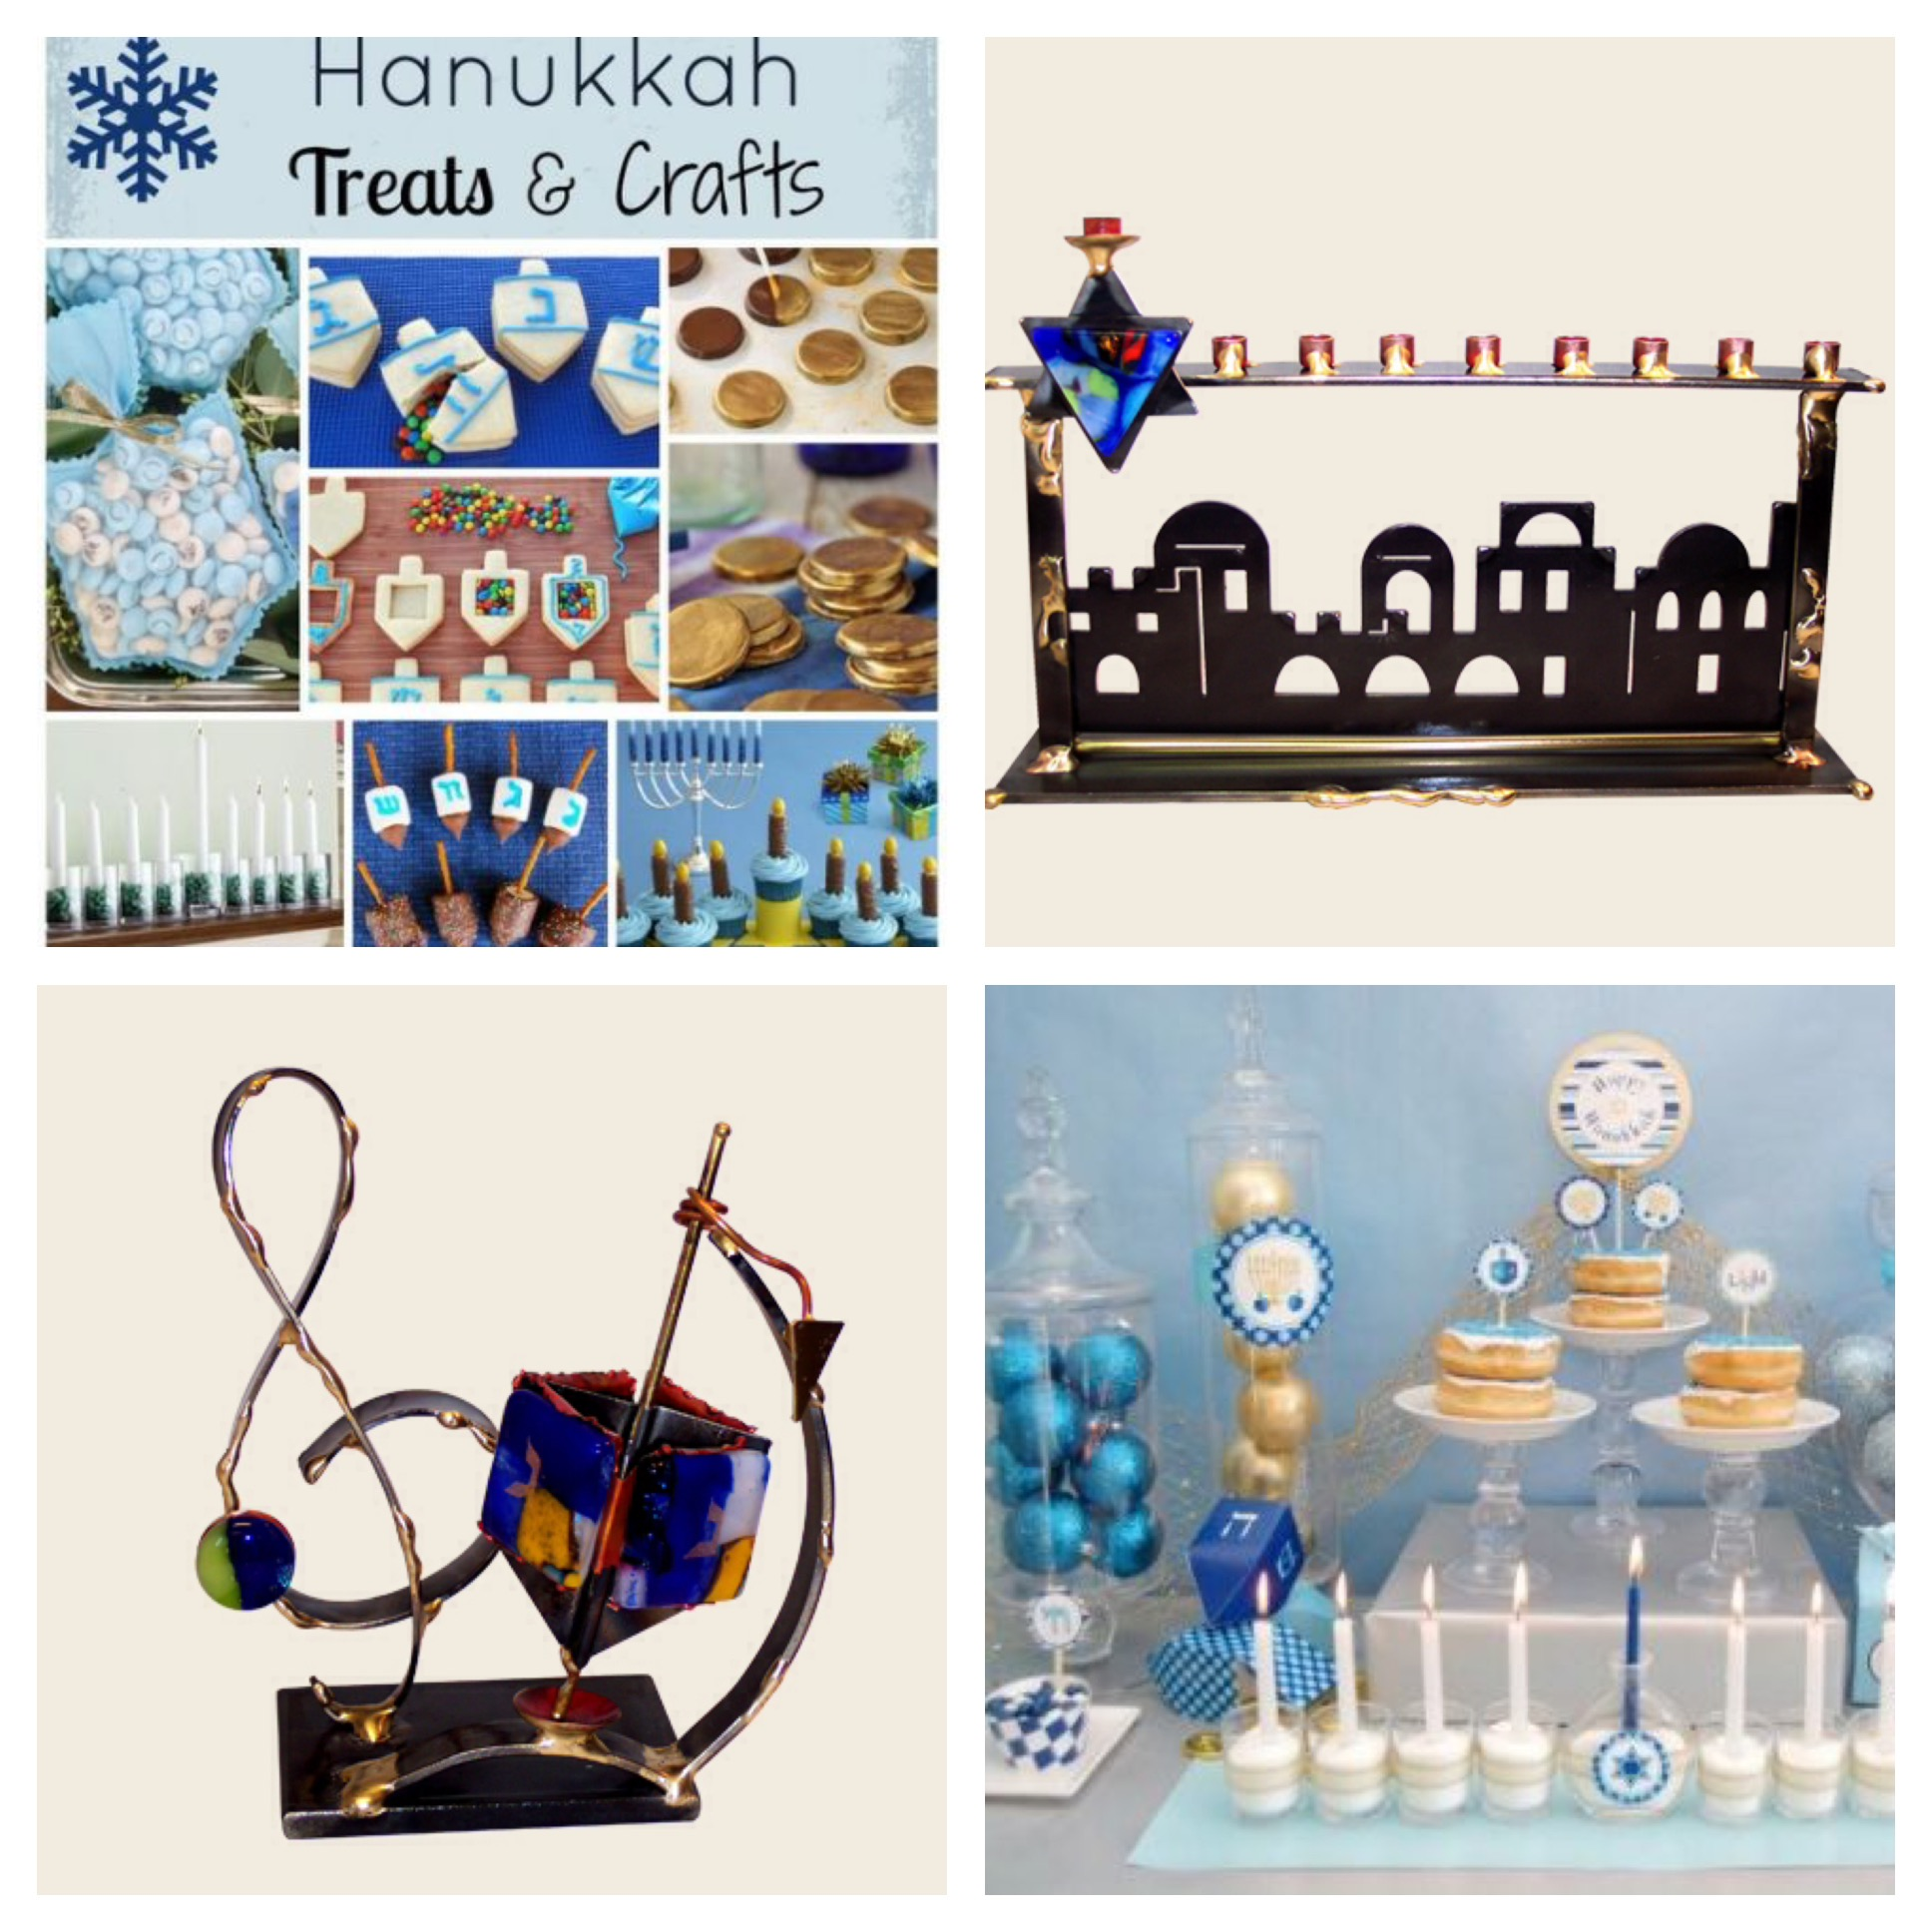 Hanukkah Treats & Sales